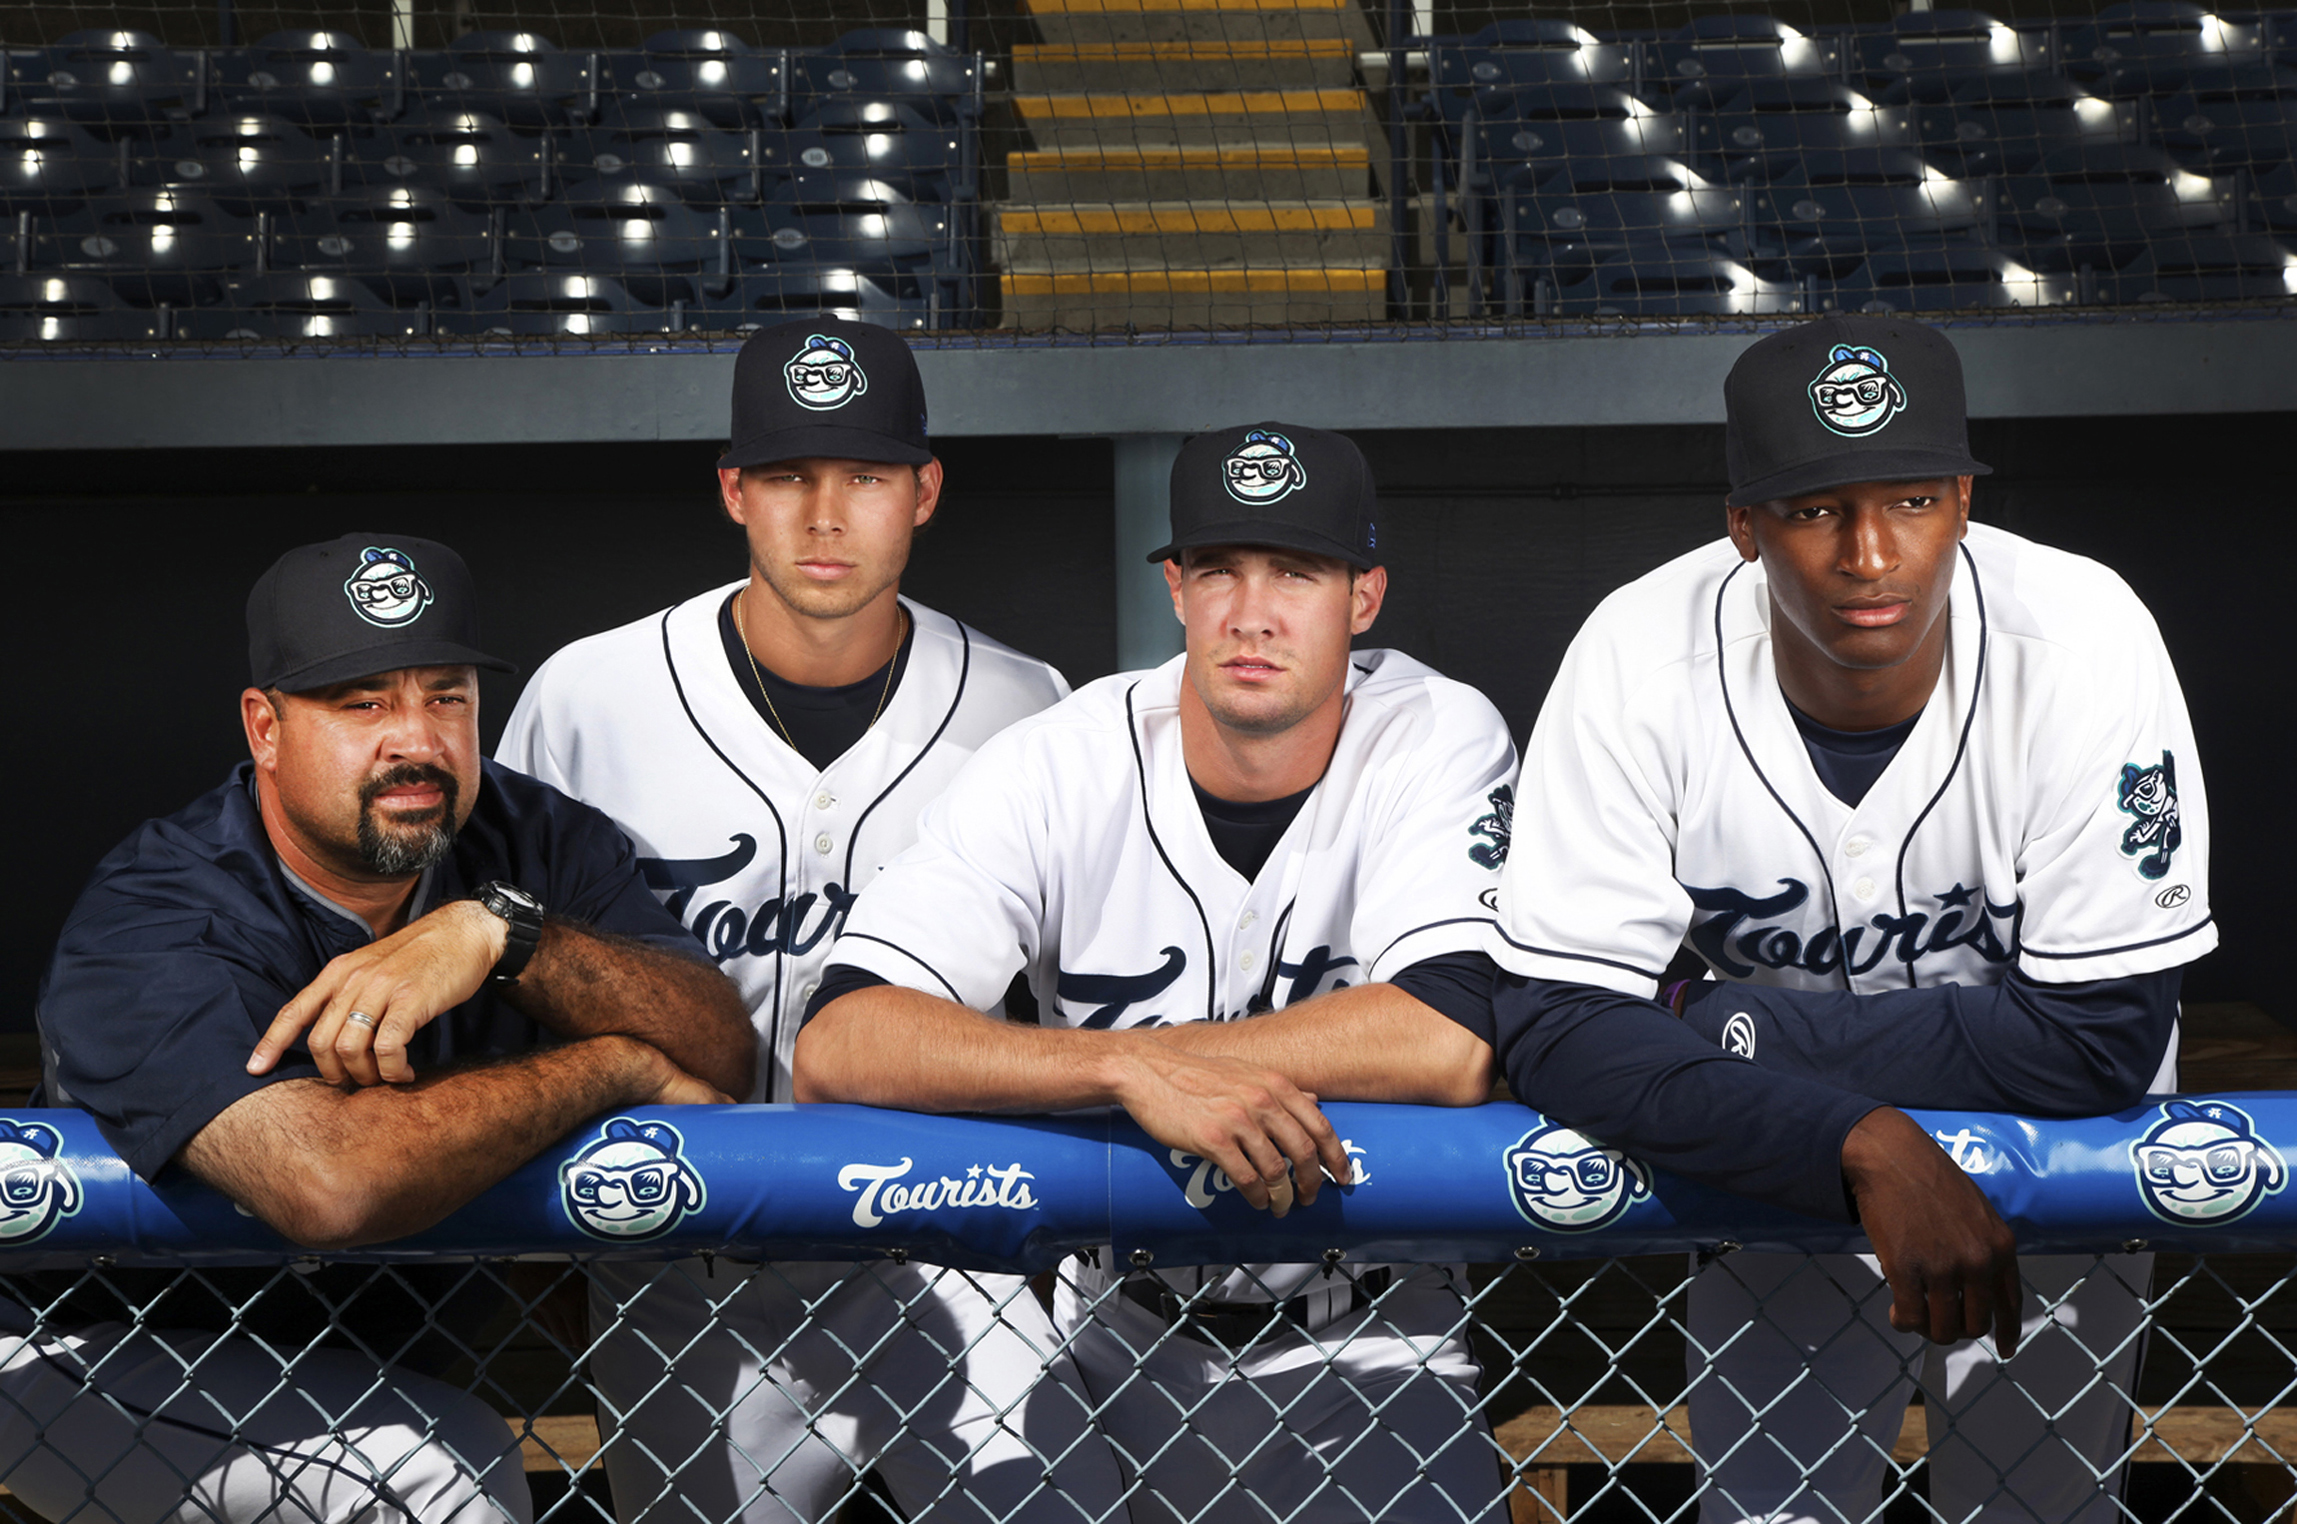 Asheville Tourists/ photo by STEWART O'SHIELDS for ASHVEGAS.COM